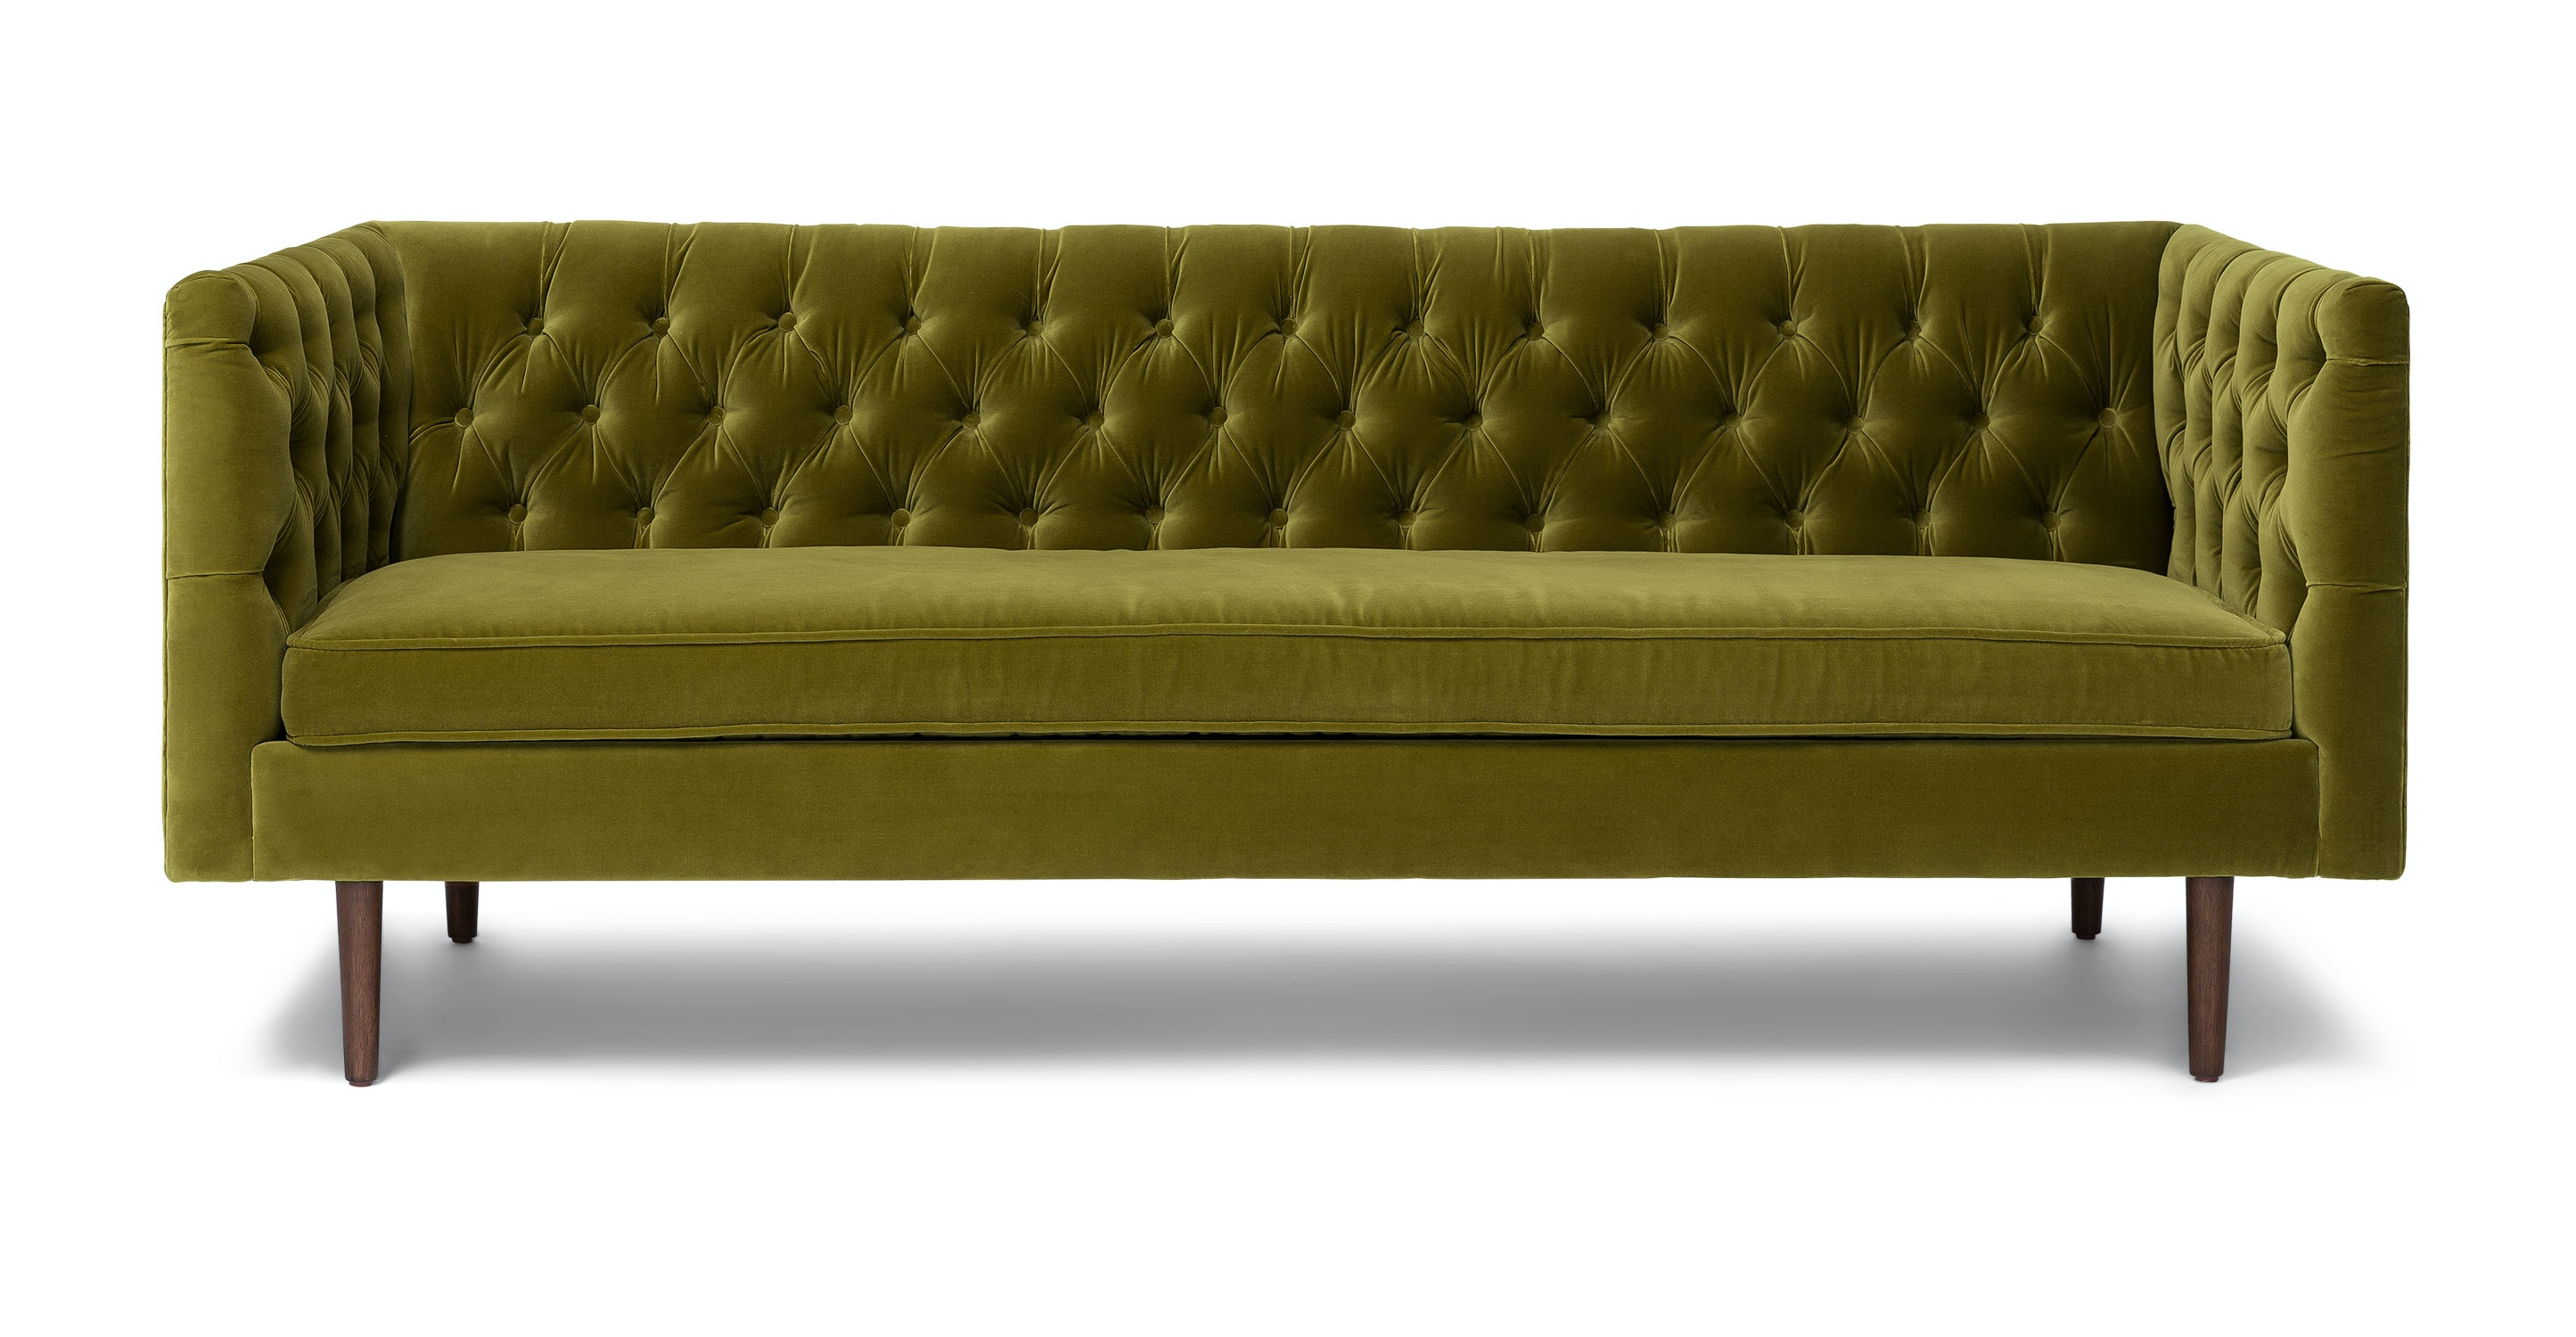 Chester Olive Green Sofa Sofas Article Modern Mid Century And Scandinavian Furniture